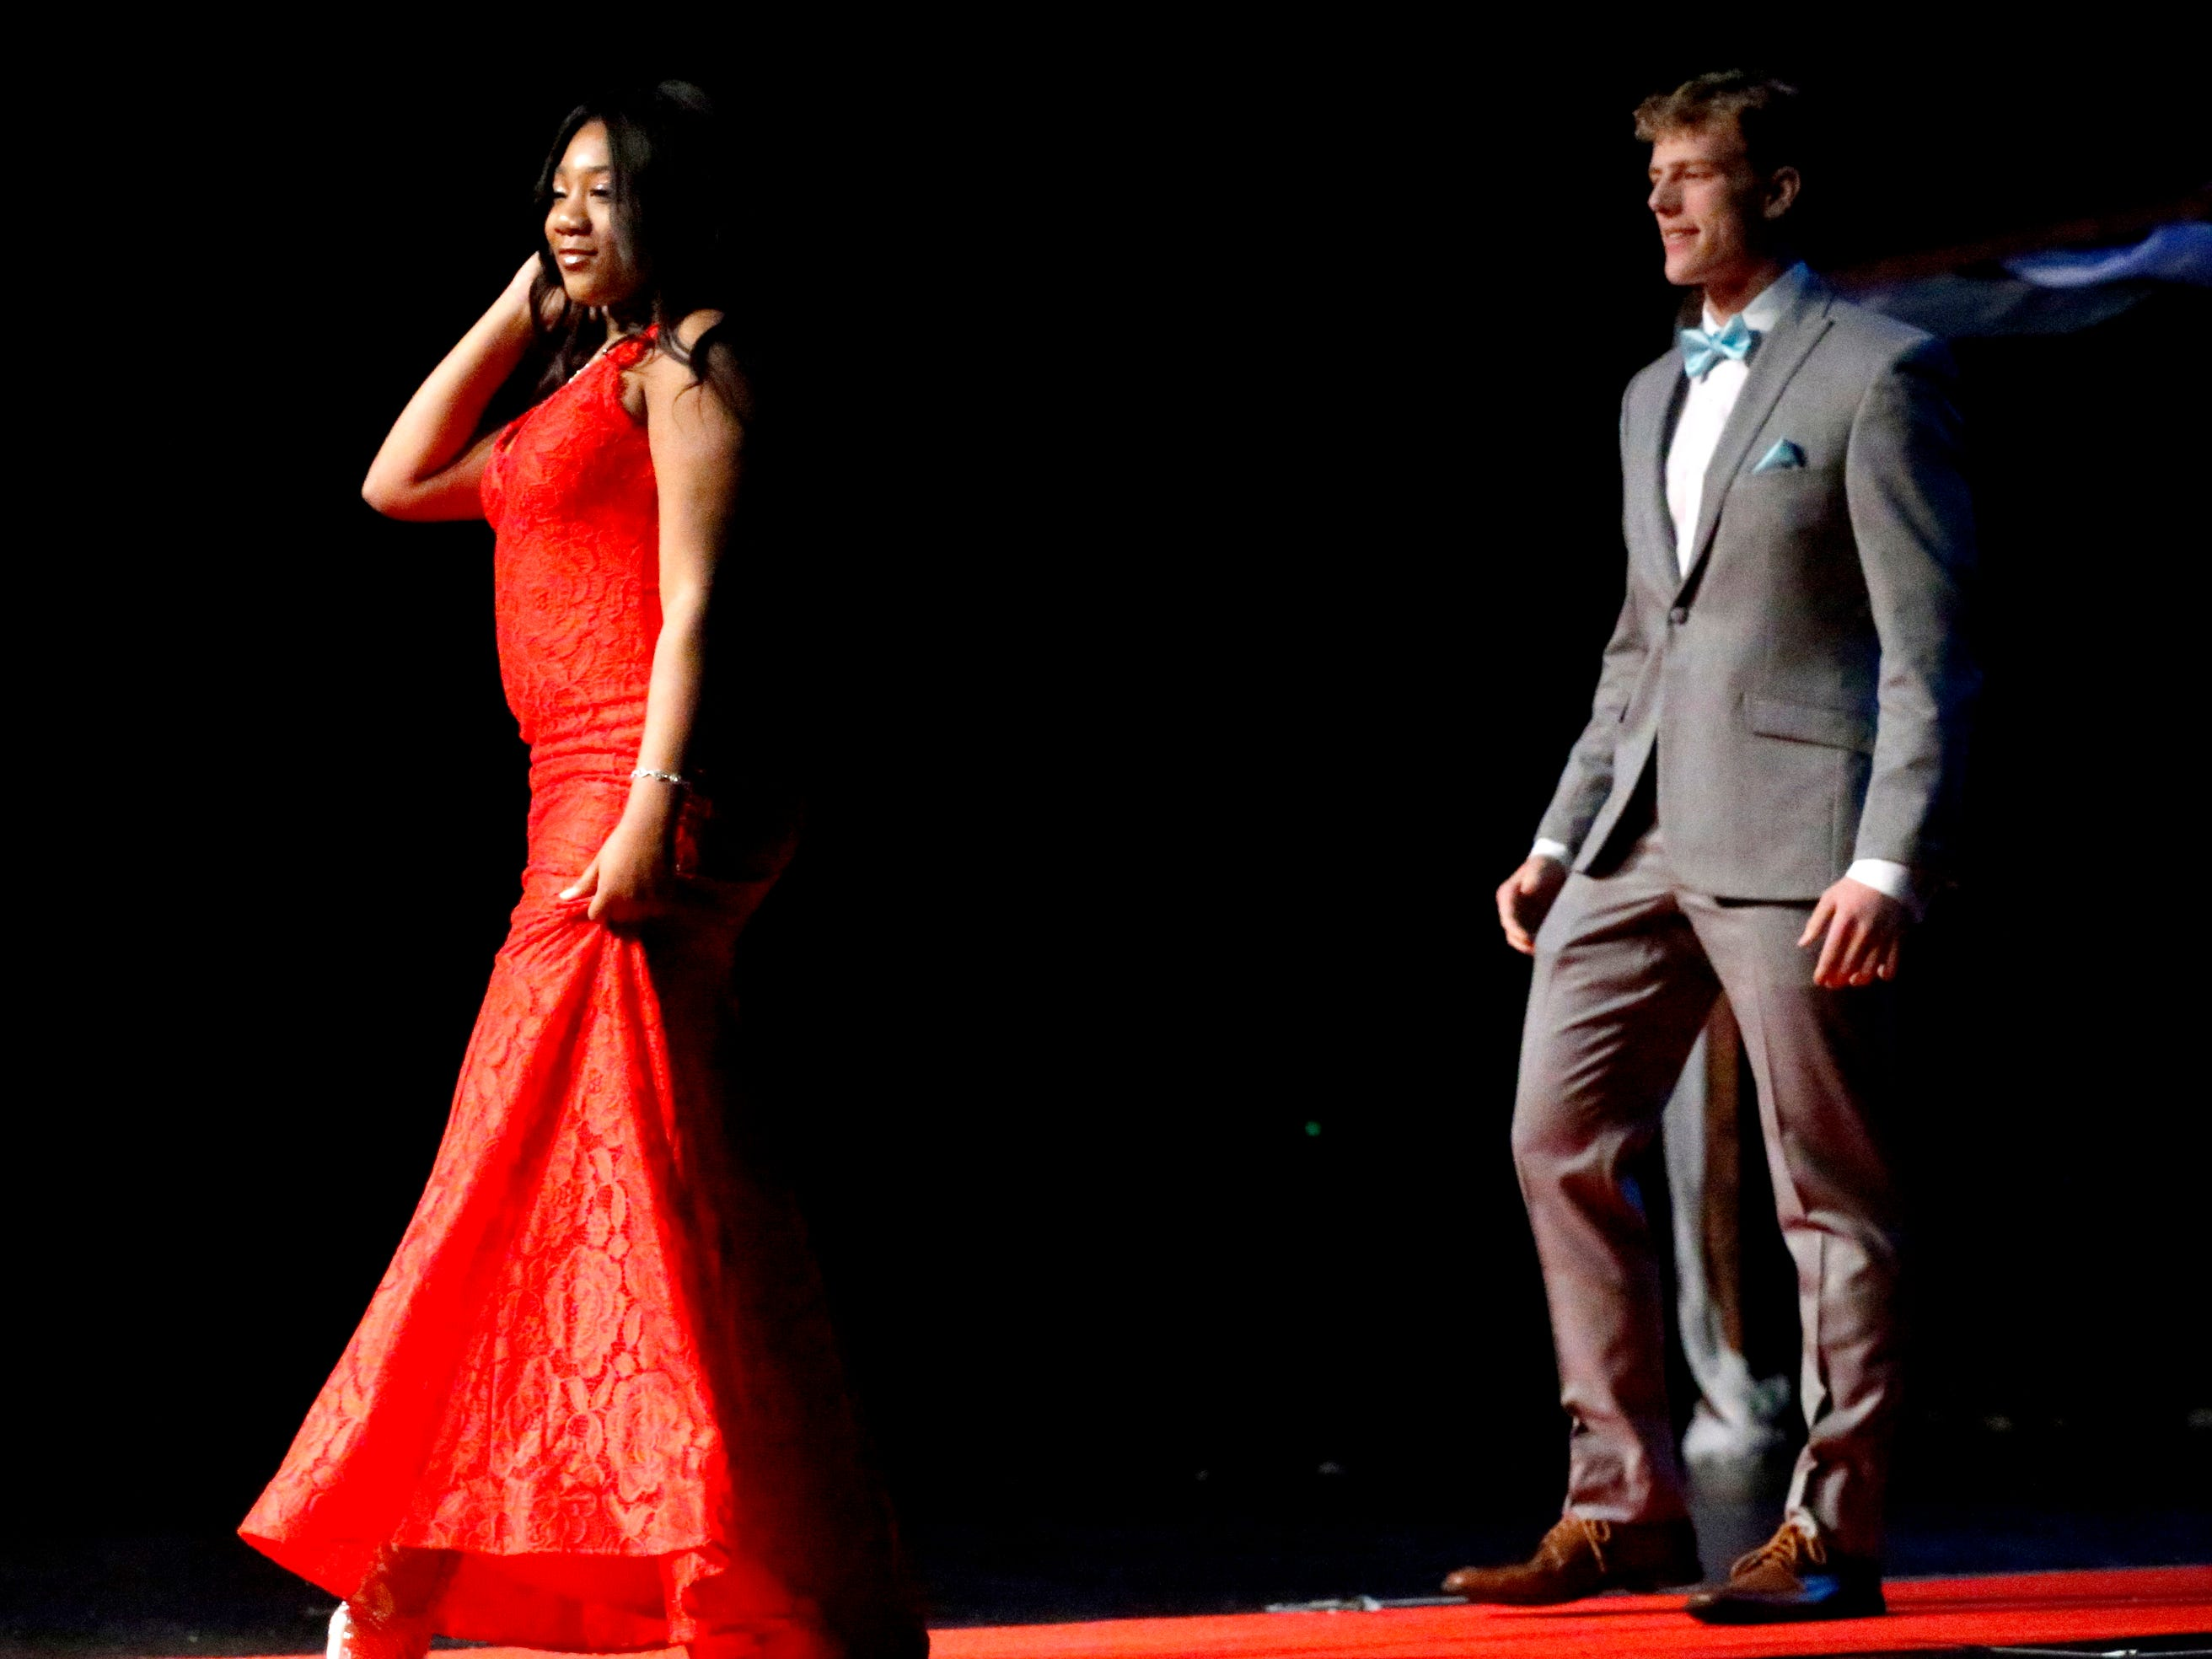 Kayla Daniels, left and Patrick Moss, right show off the latest in prom fashions during the Siegel Prom Fashion show on Thursday, Feb. 14, 2019.